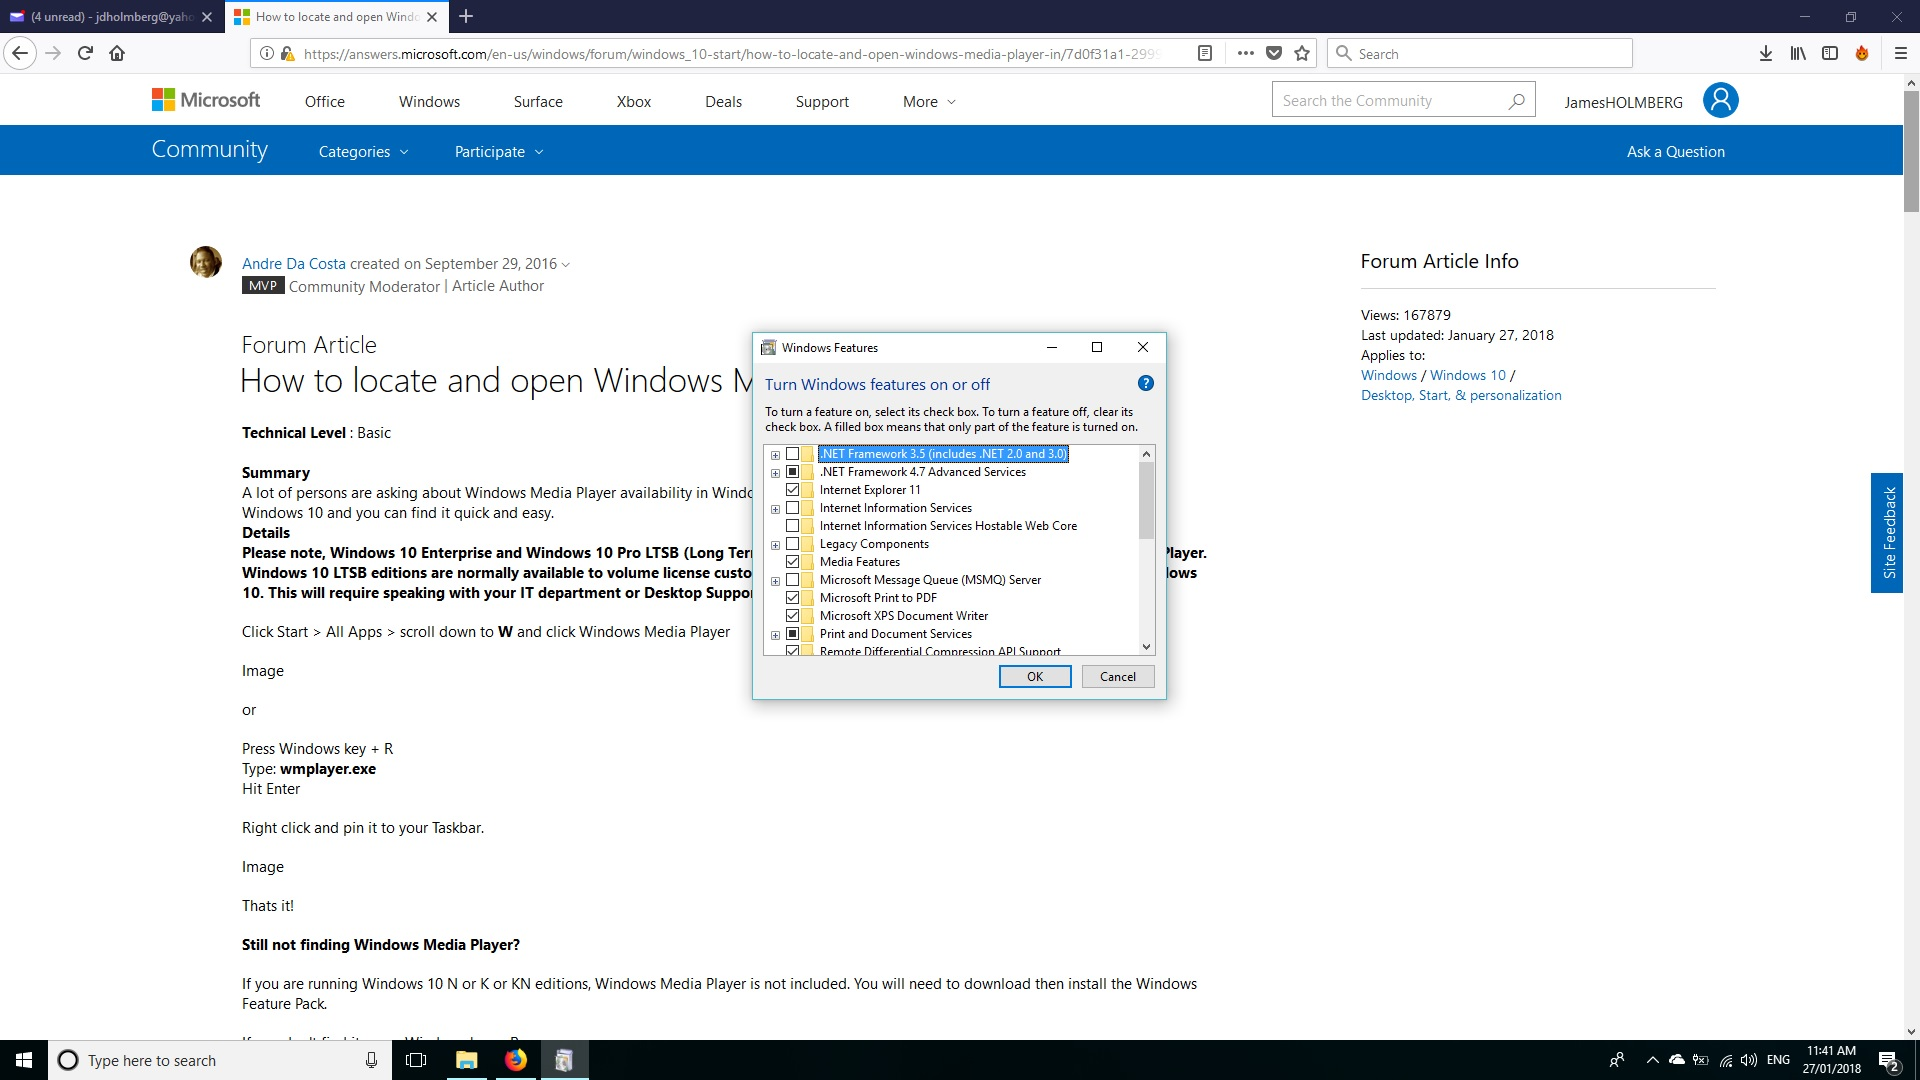 How to locate and open Windows Media Player in Windows 10